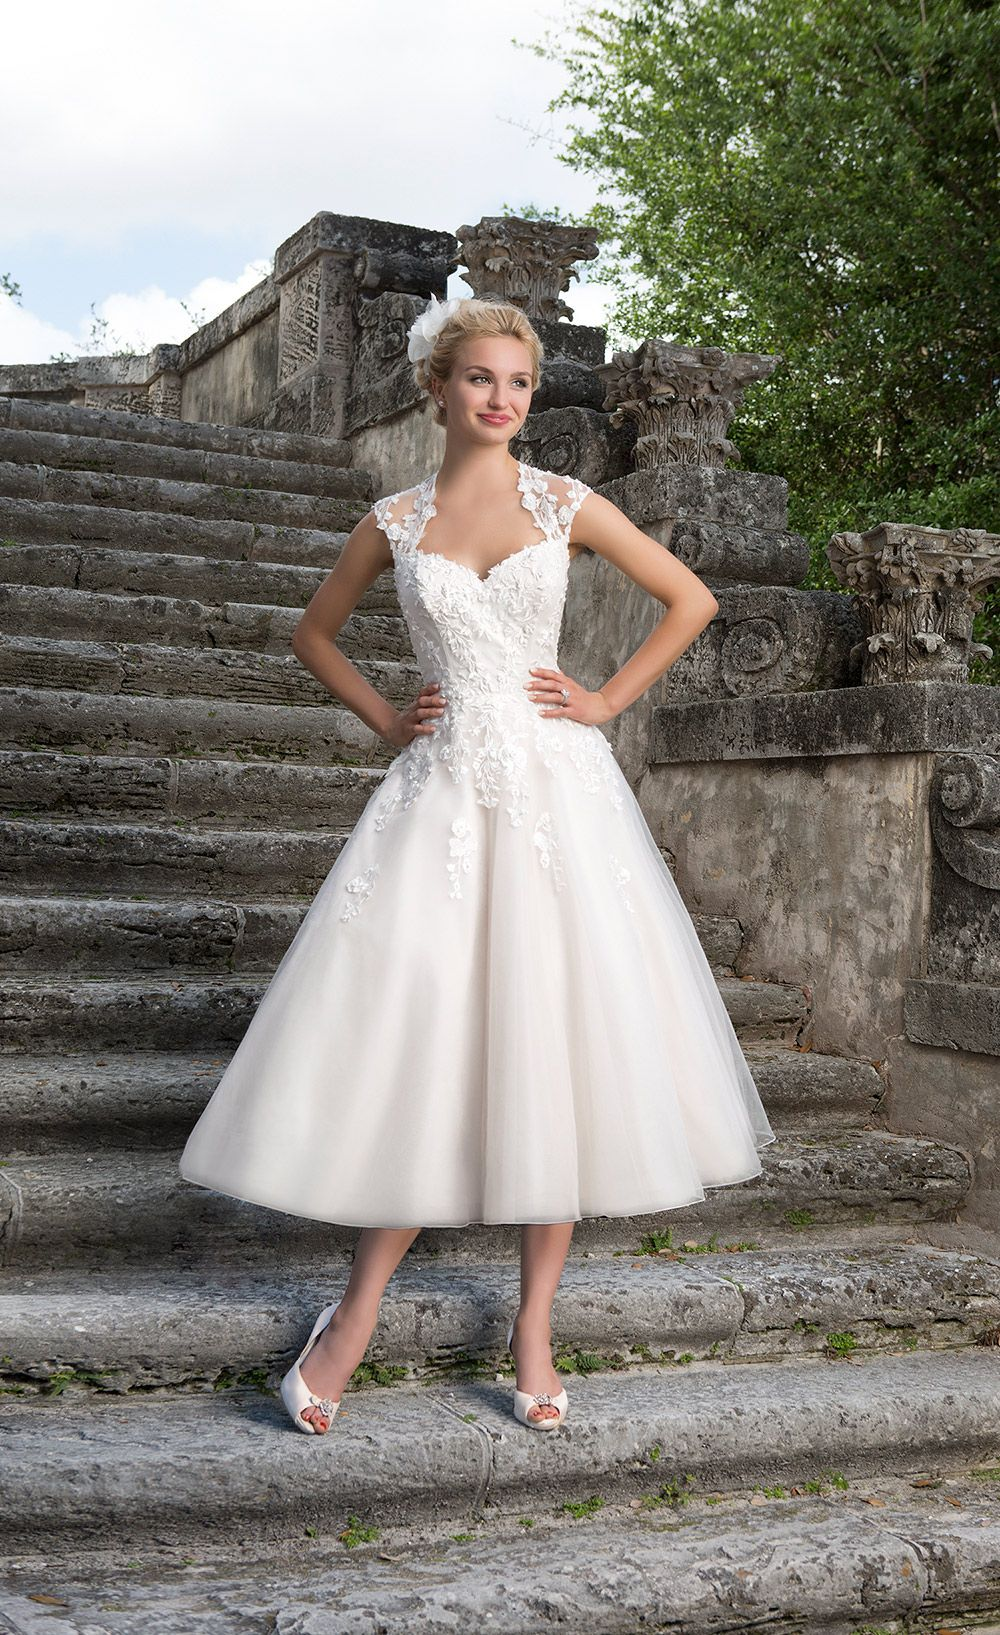 1950s Wedding Dresses: Our Favourite Styles Inspired by the Fabulous ...